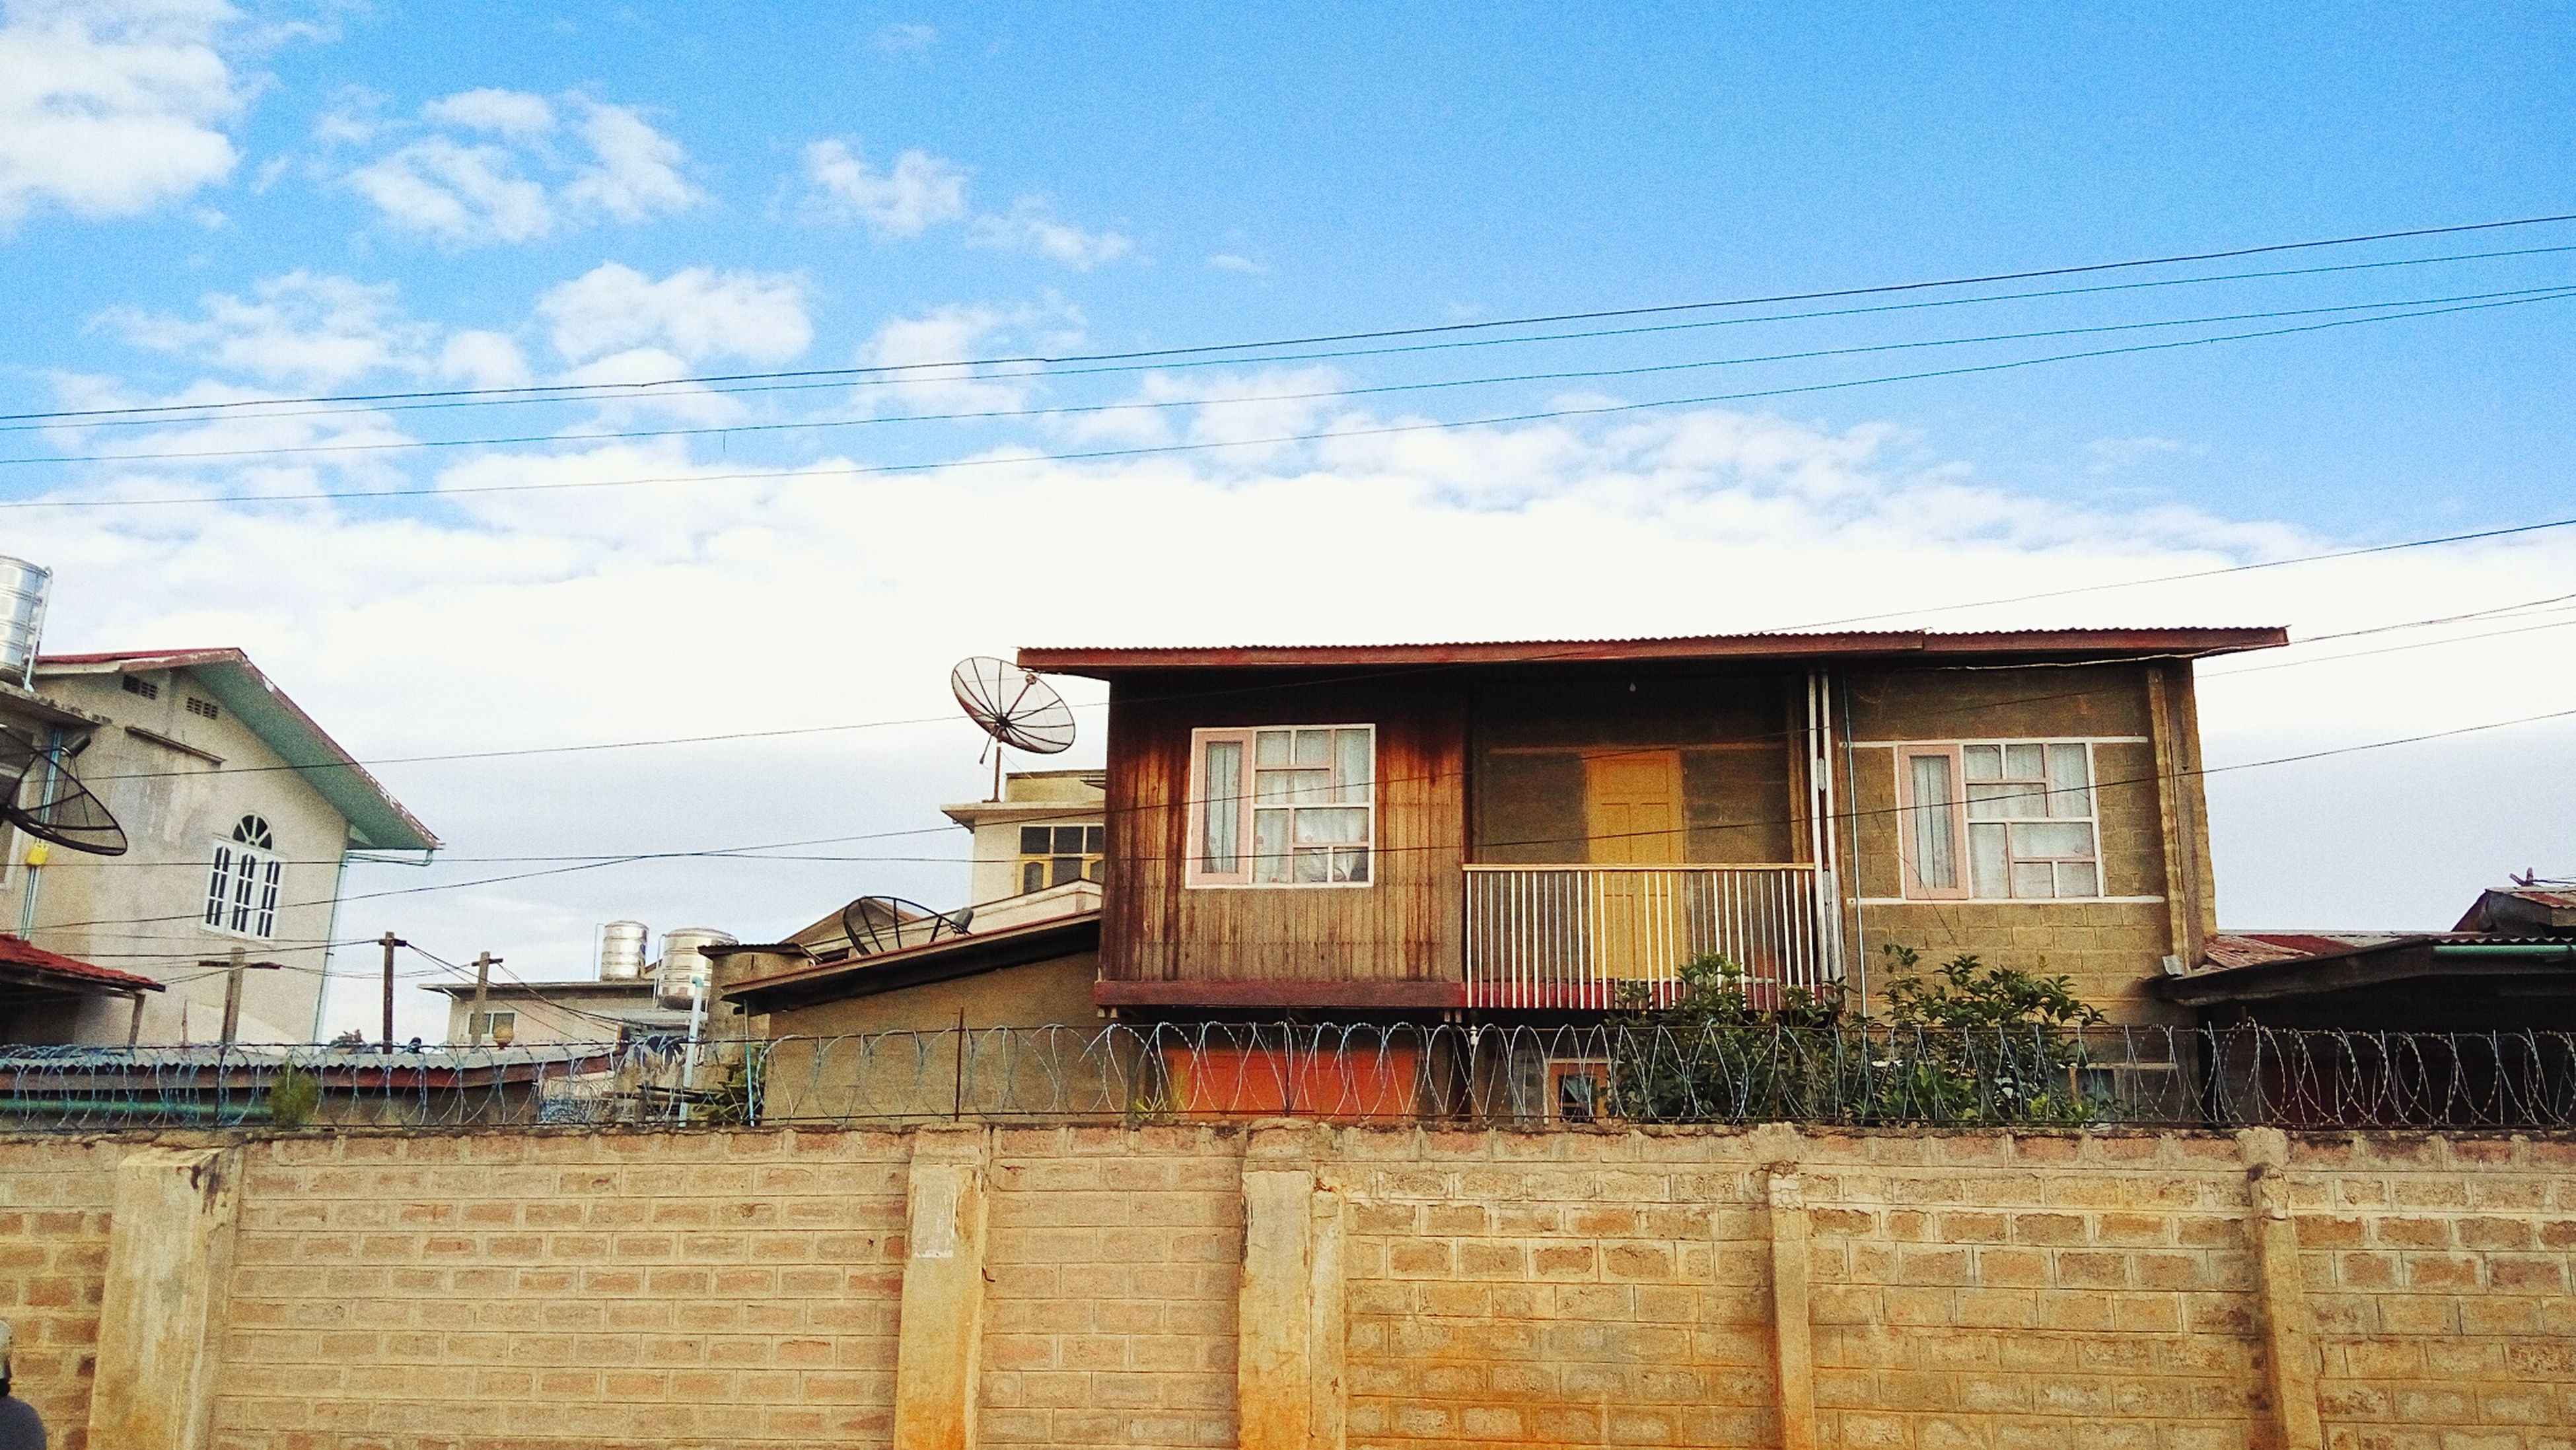 building exterior, architecture, built structure, house, sky, power line, residential structure, cable, residential building, window, roof, day, outdoors, cloud, cloud - sky, no people, electricity pylon, abandoned, old, low angle view